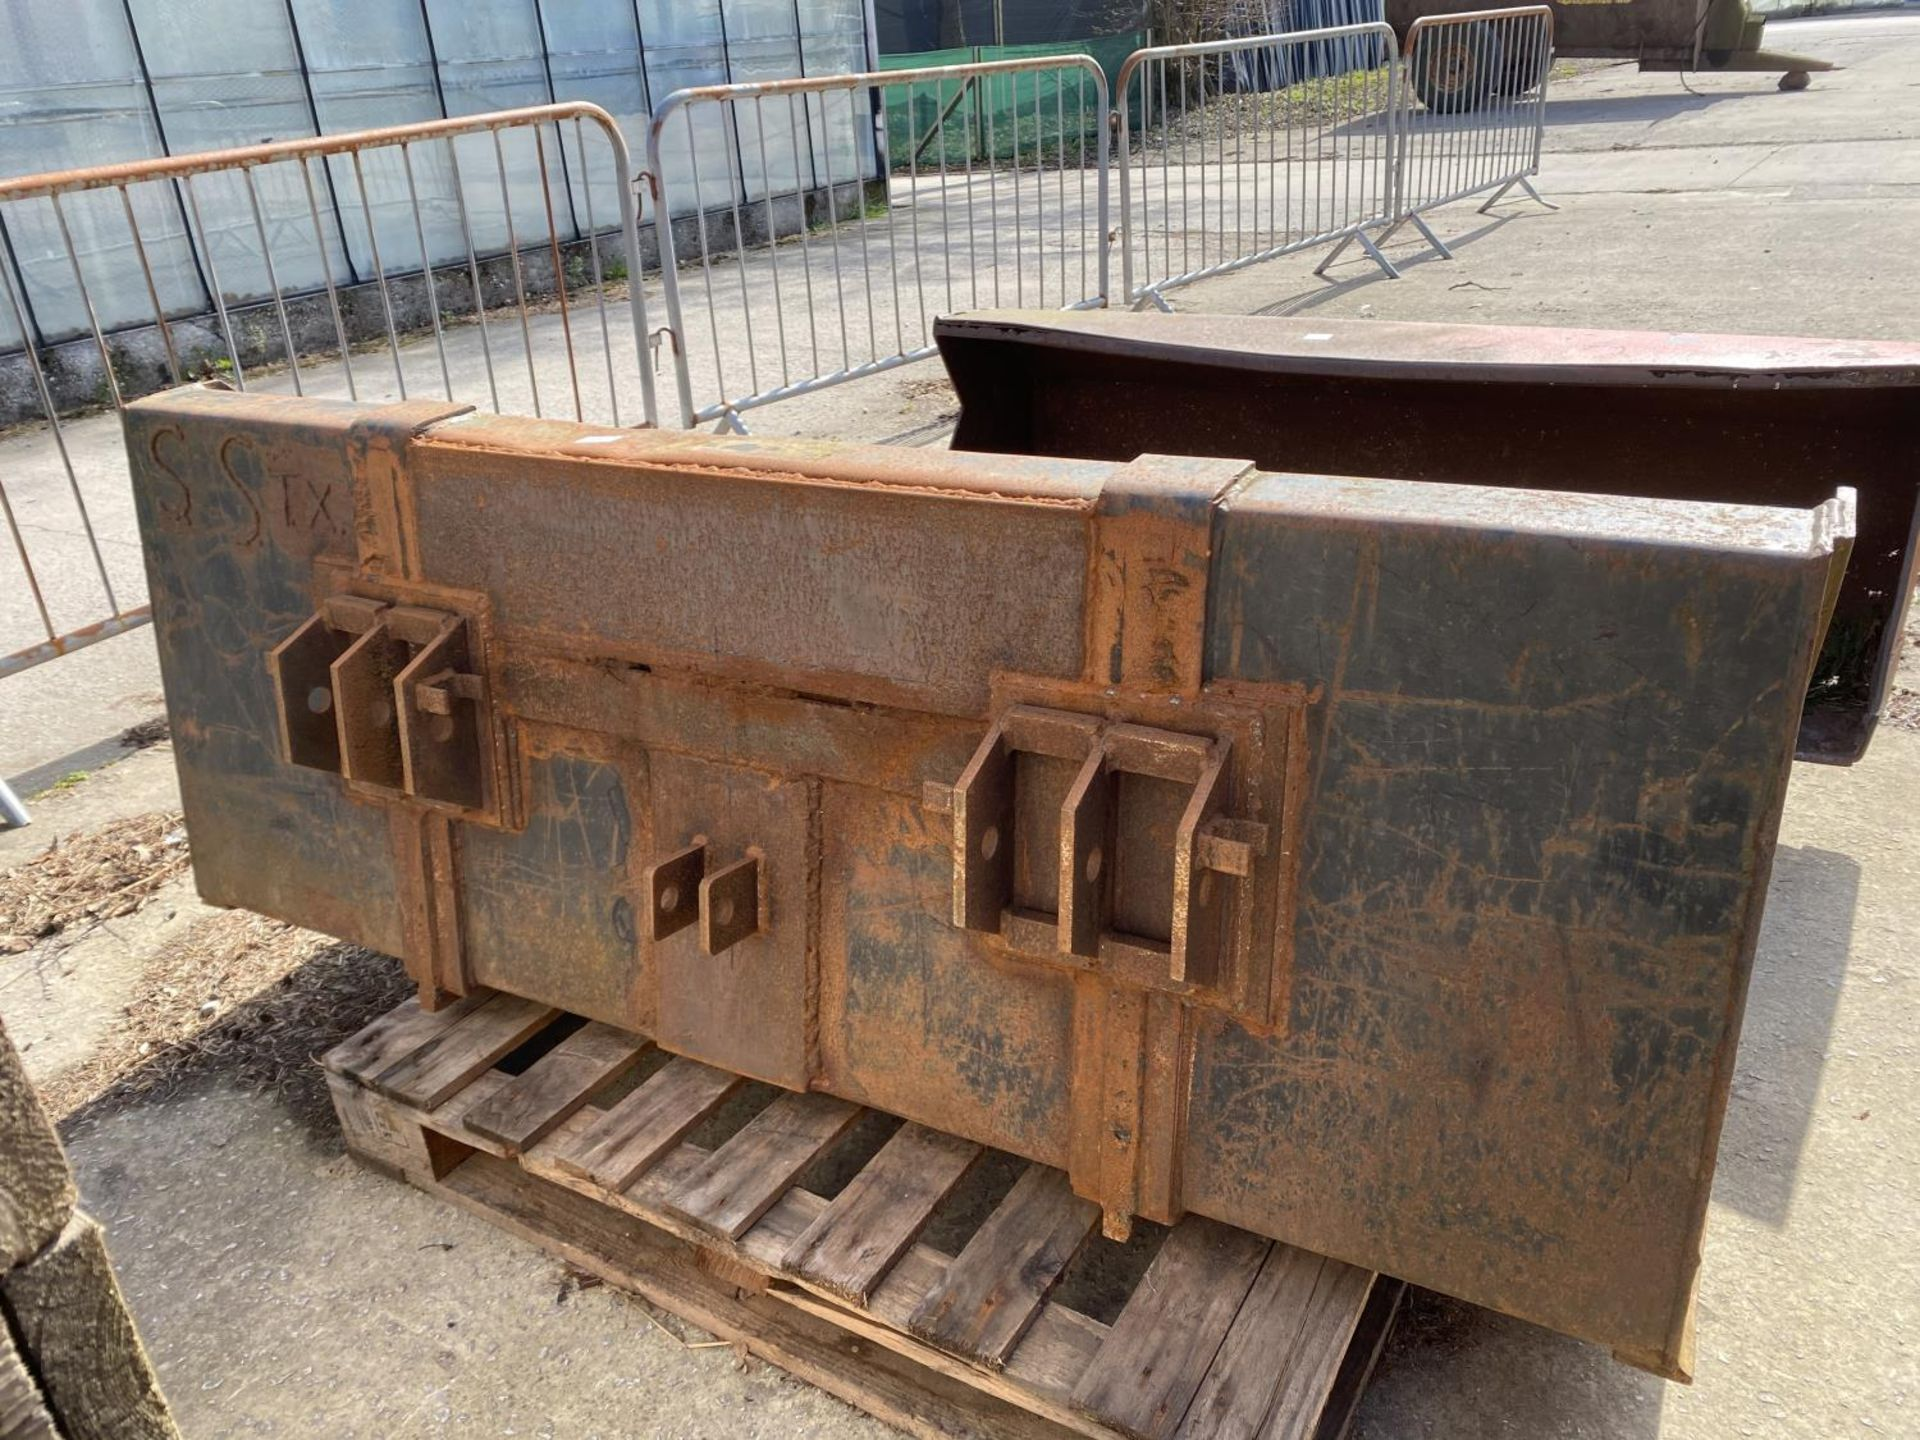 A FORE END LOADER BUCKET (FITS LOT 50) - Image 3 of 3